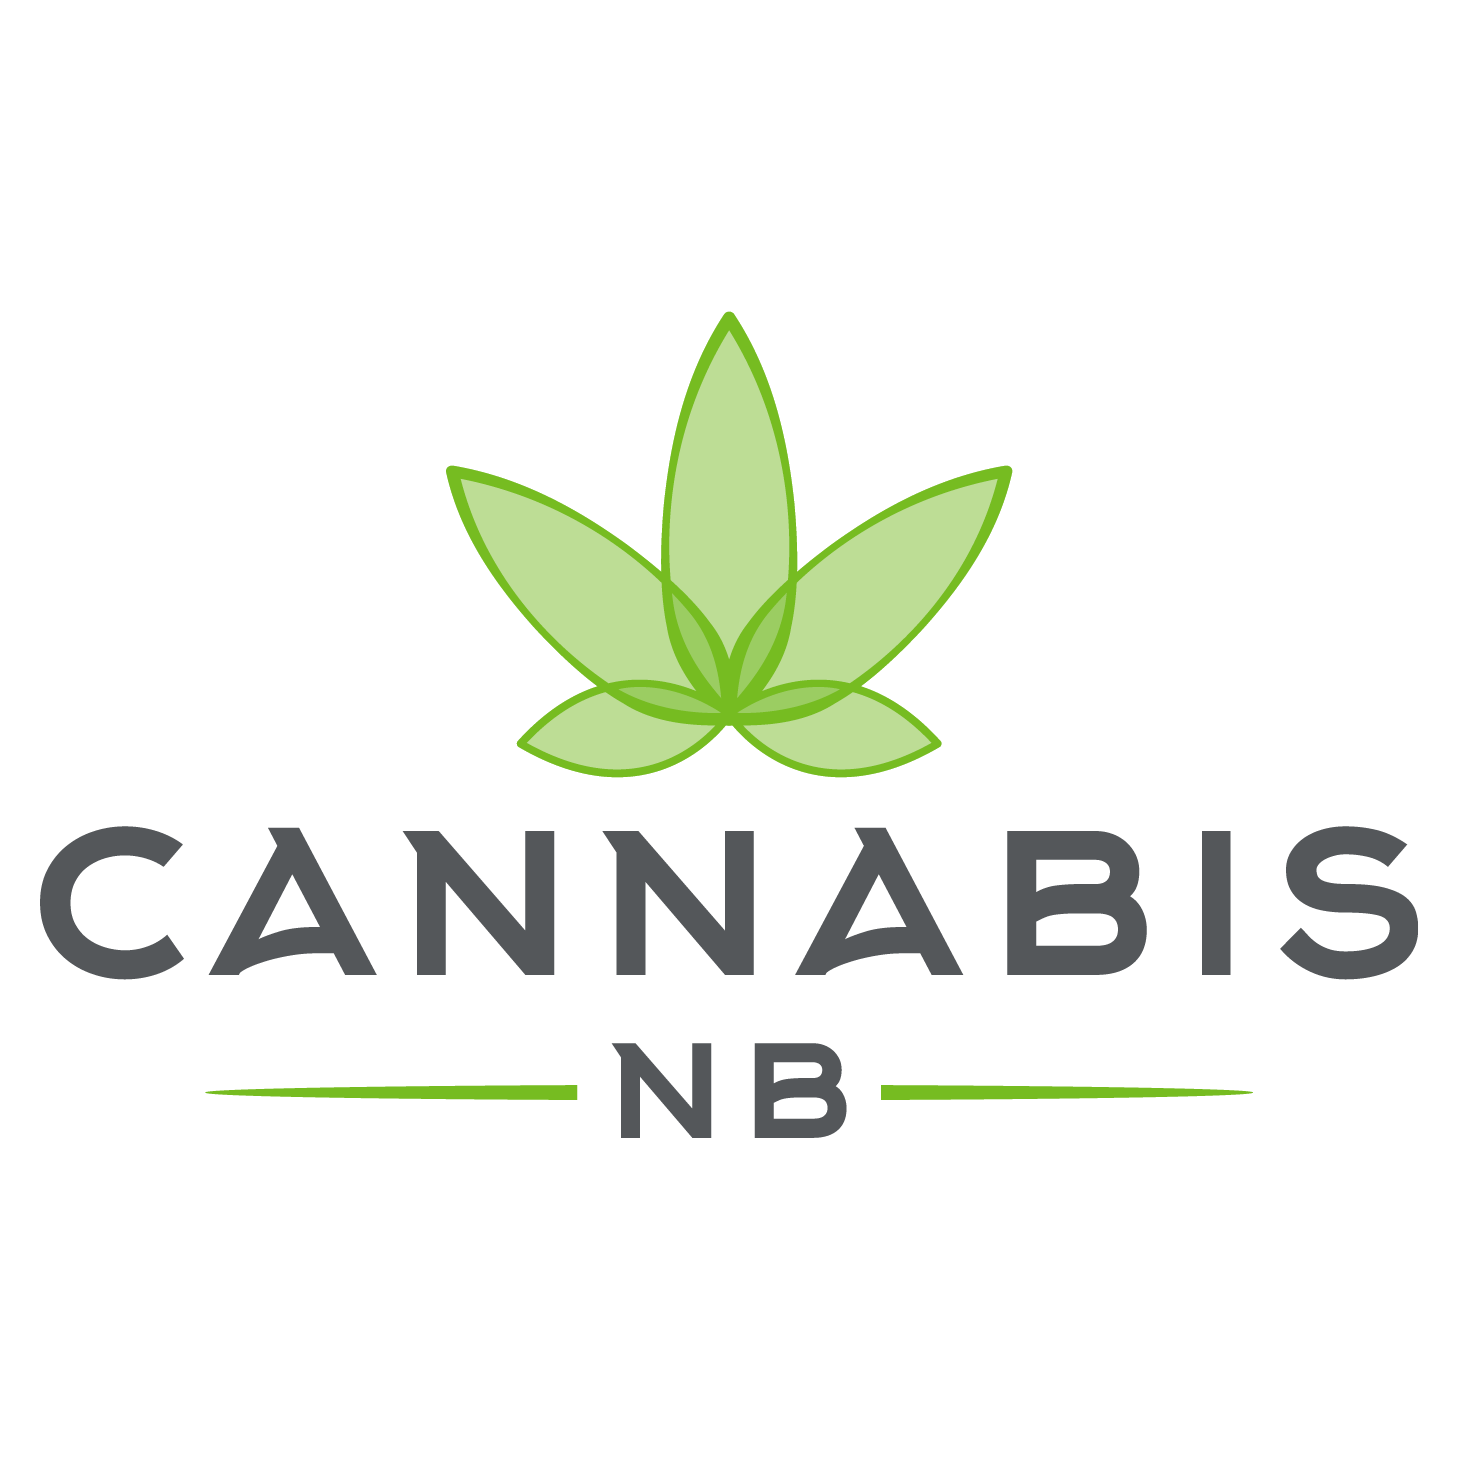 Cannabis NB in Sackville: Cannabis NB logo